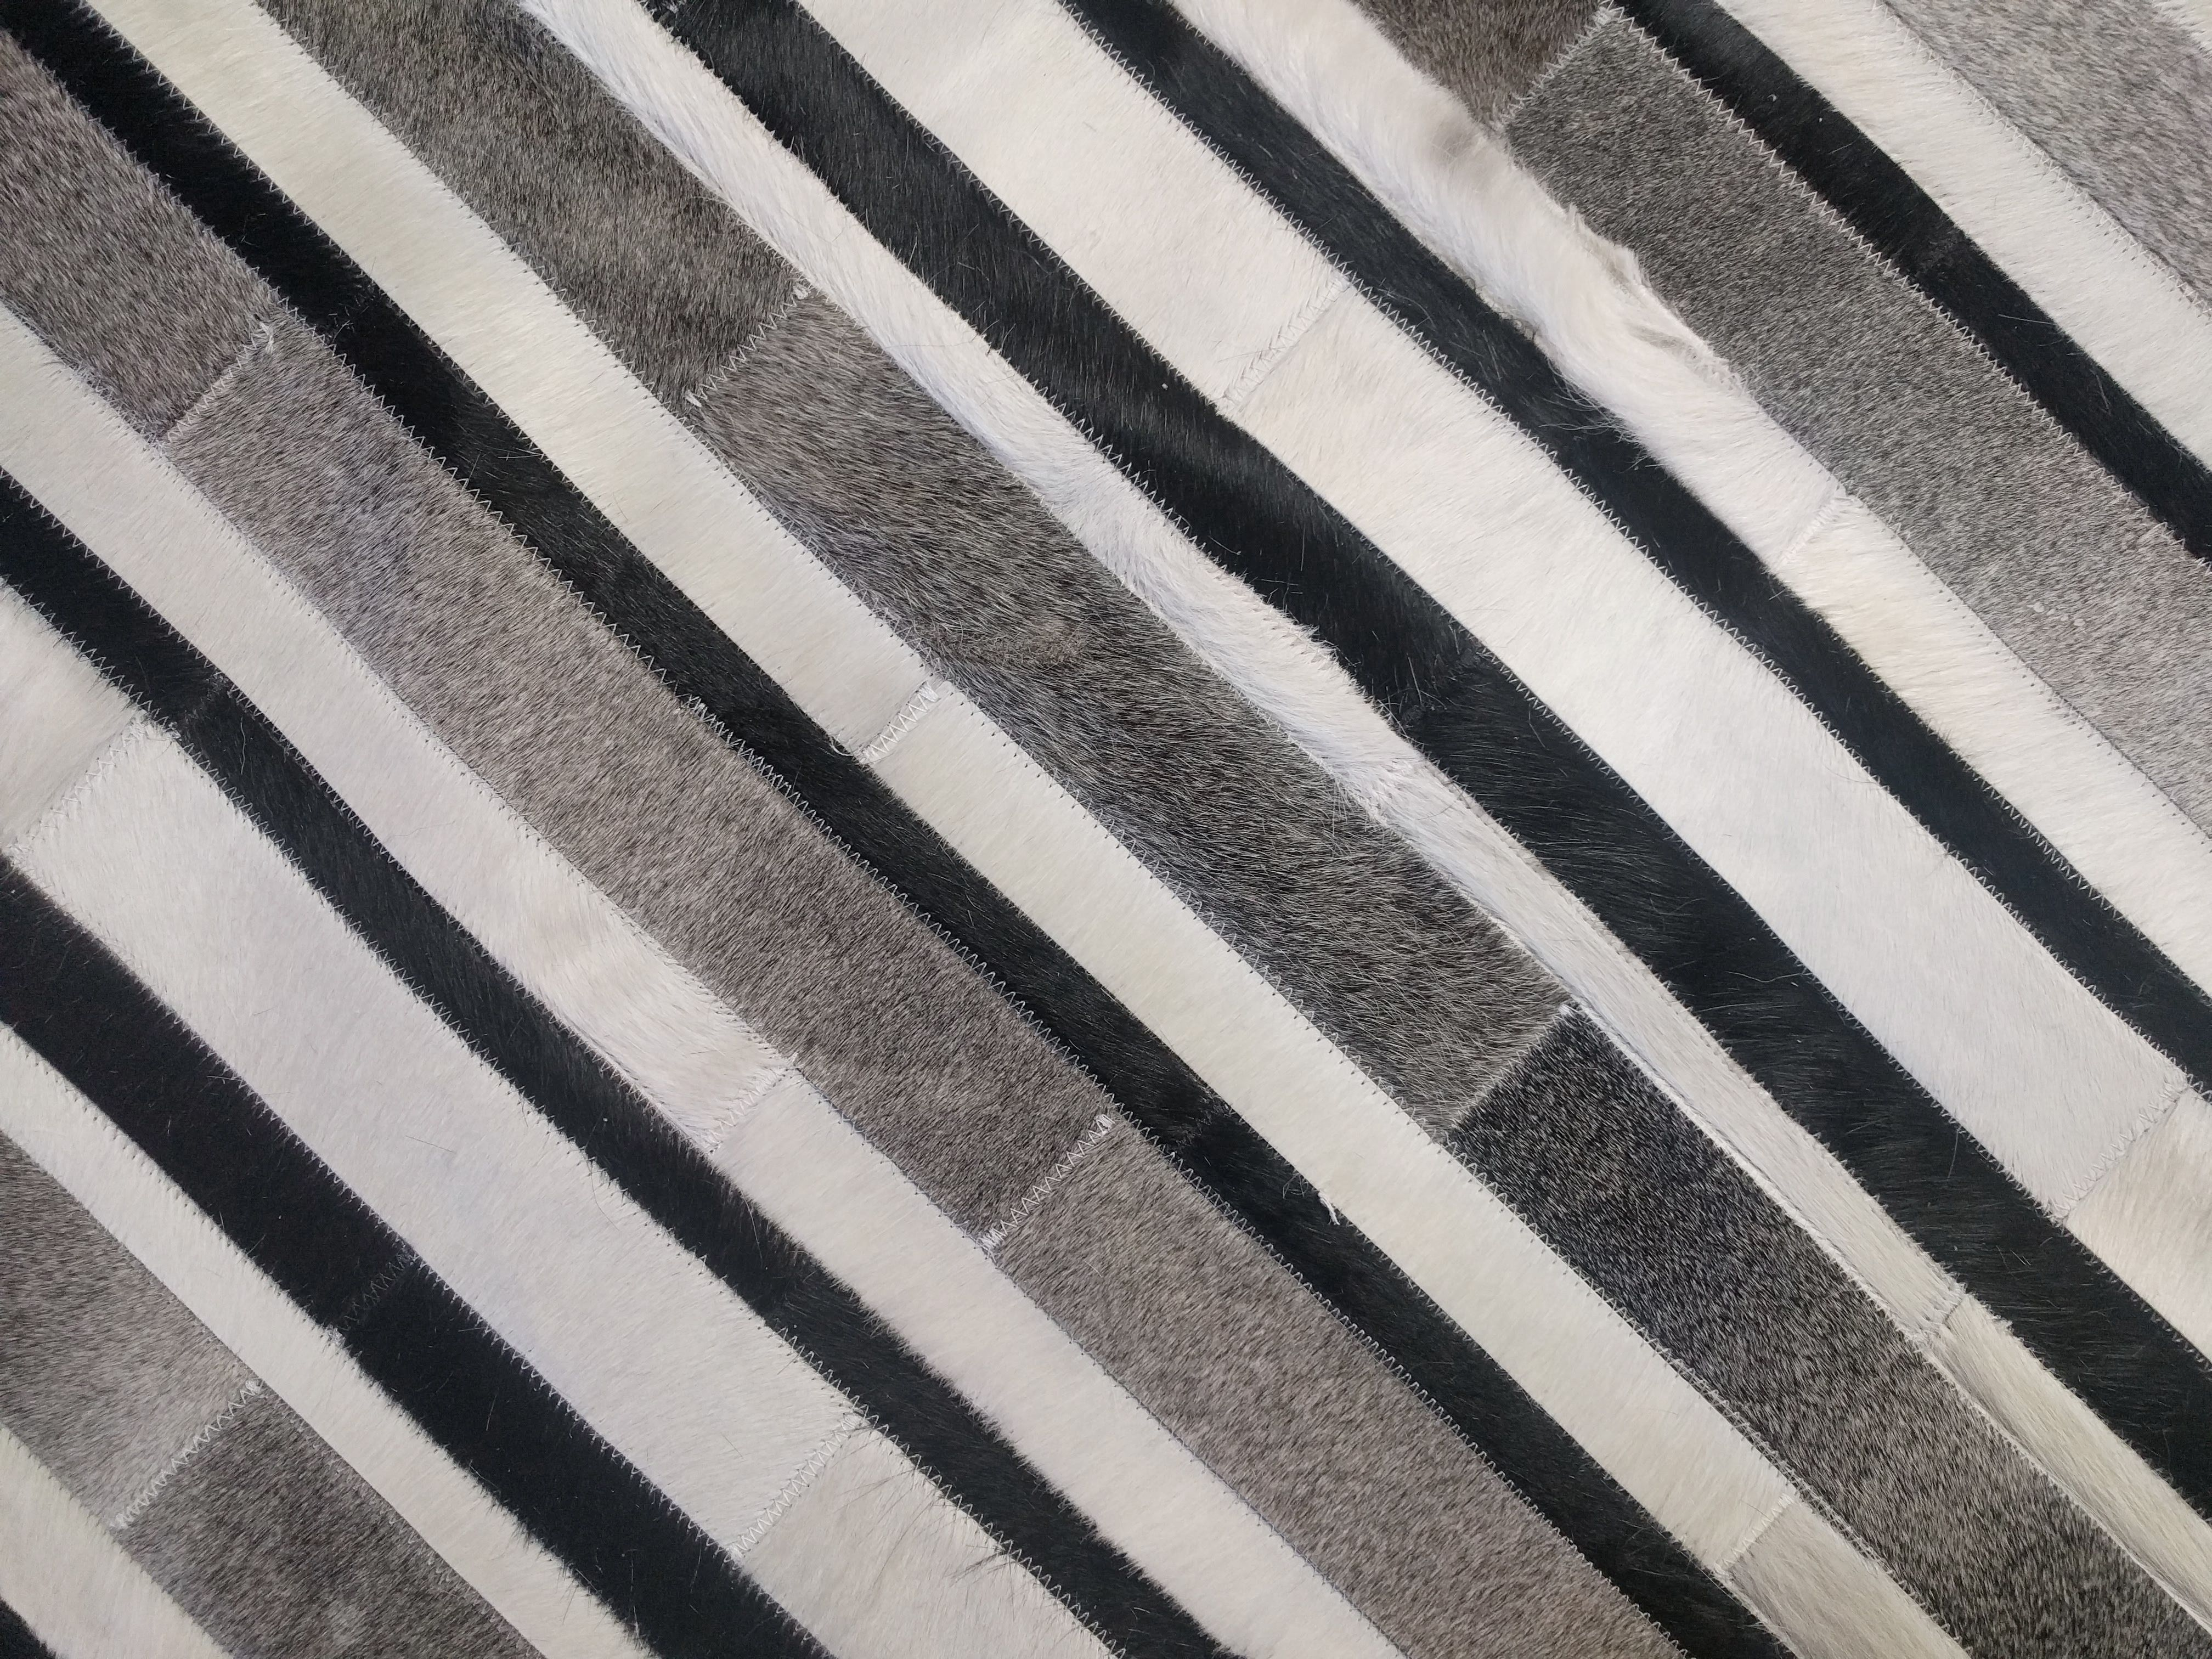 Outdoor Black And White Plaid Rug Perfect For Layered Rug Make Your Front Door Instagram Ready Lay This Beautiful Buffalo Plaid Rug In 2020 Plaid Rug Rugs Porch Rug